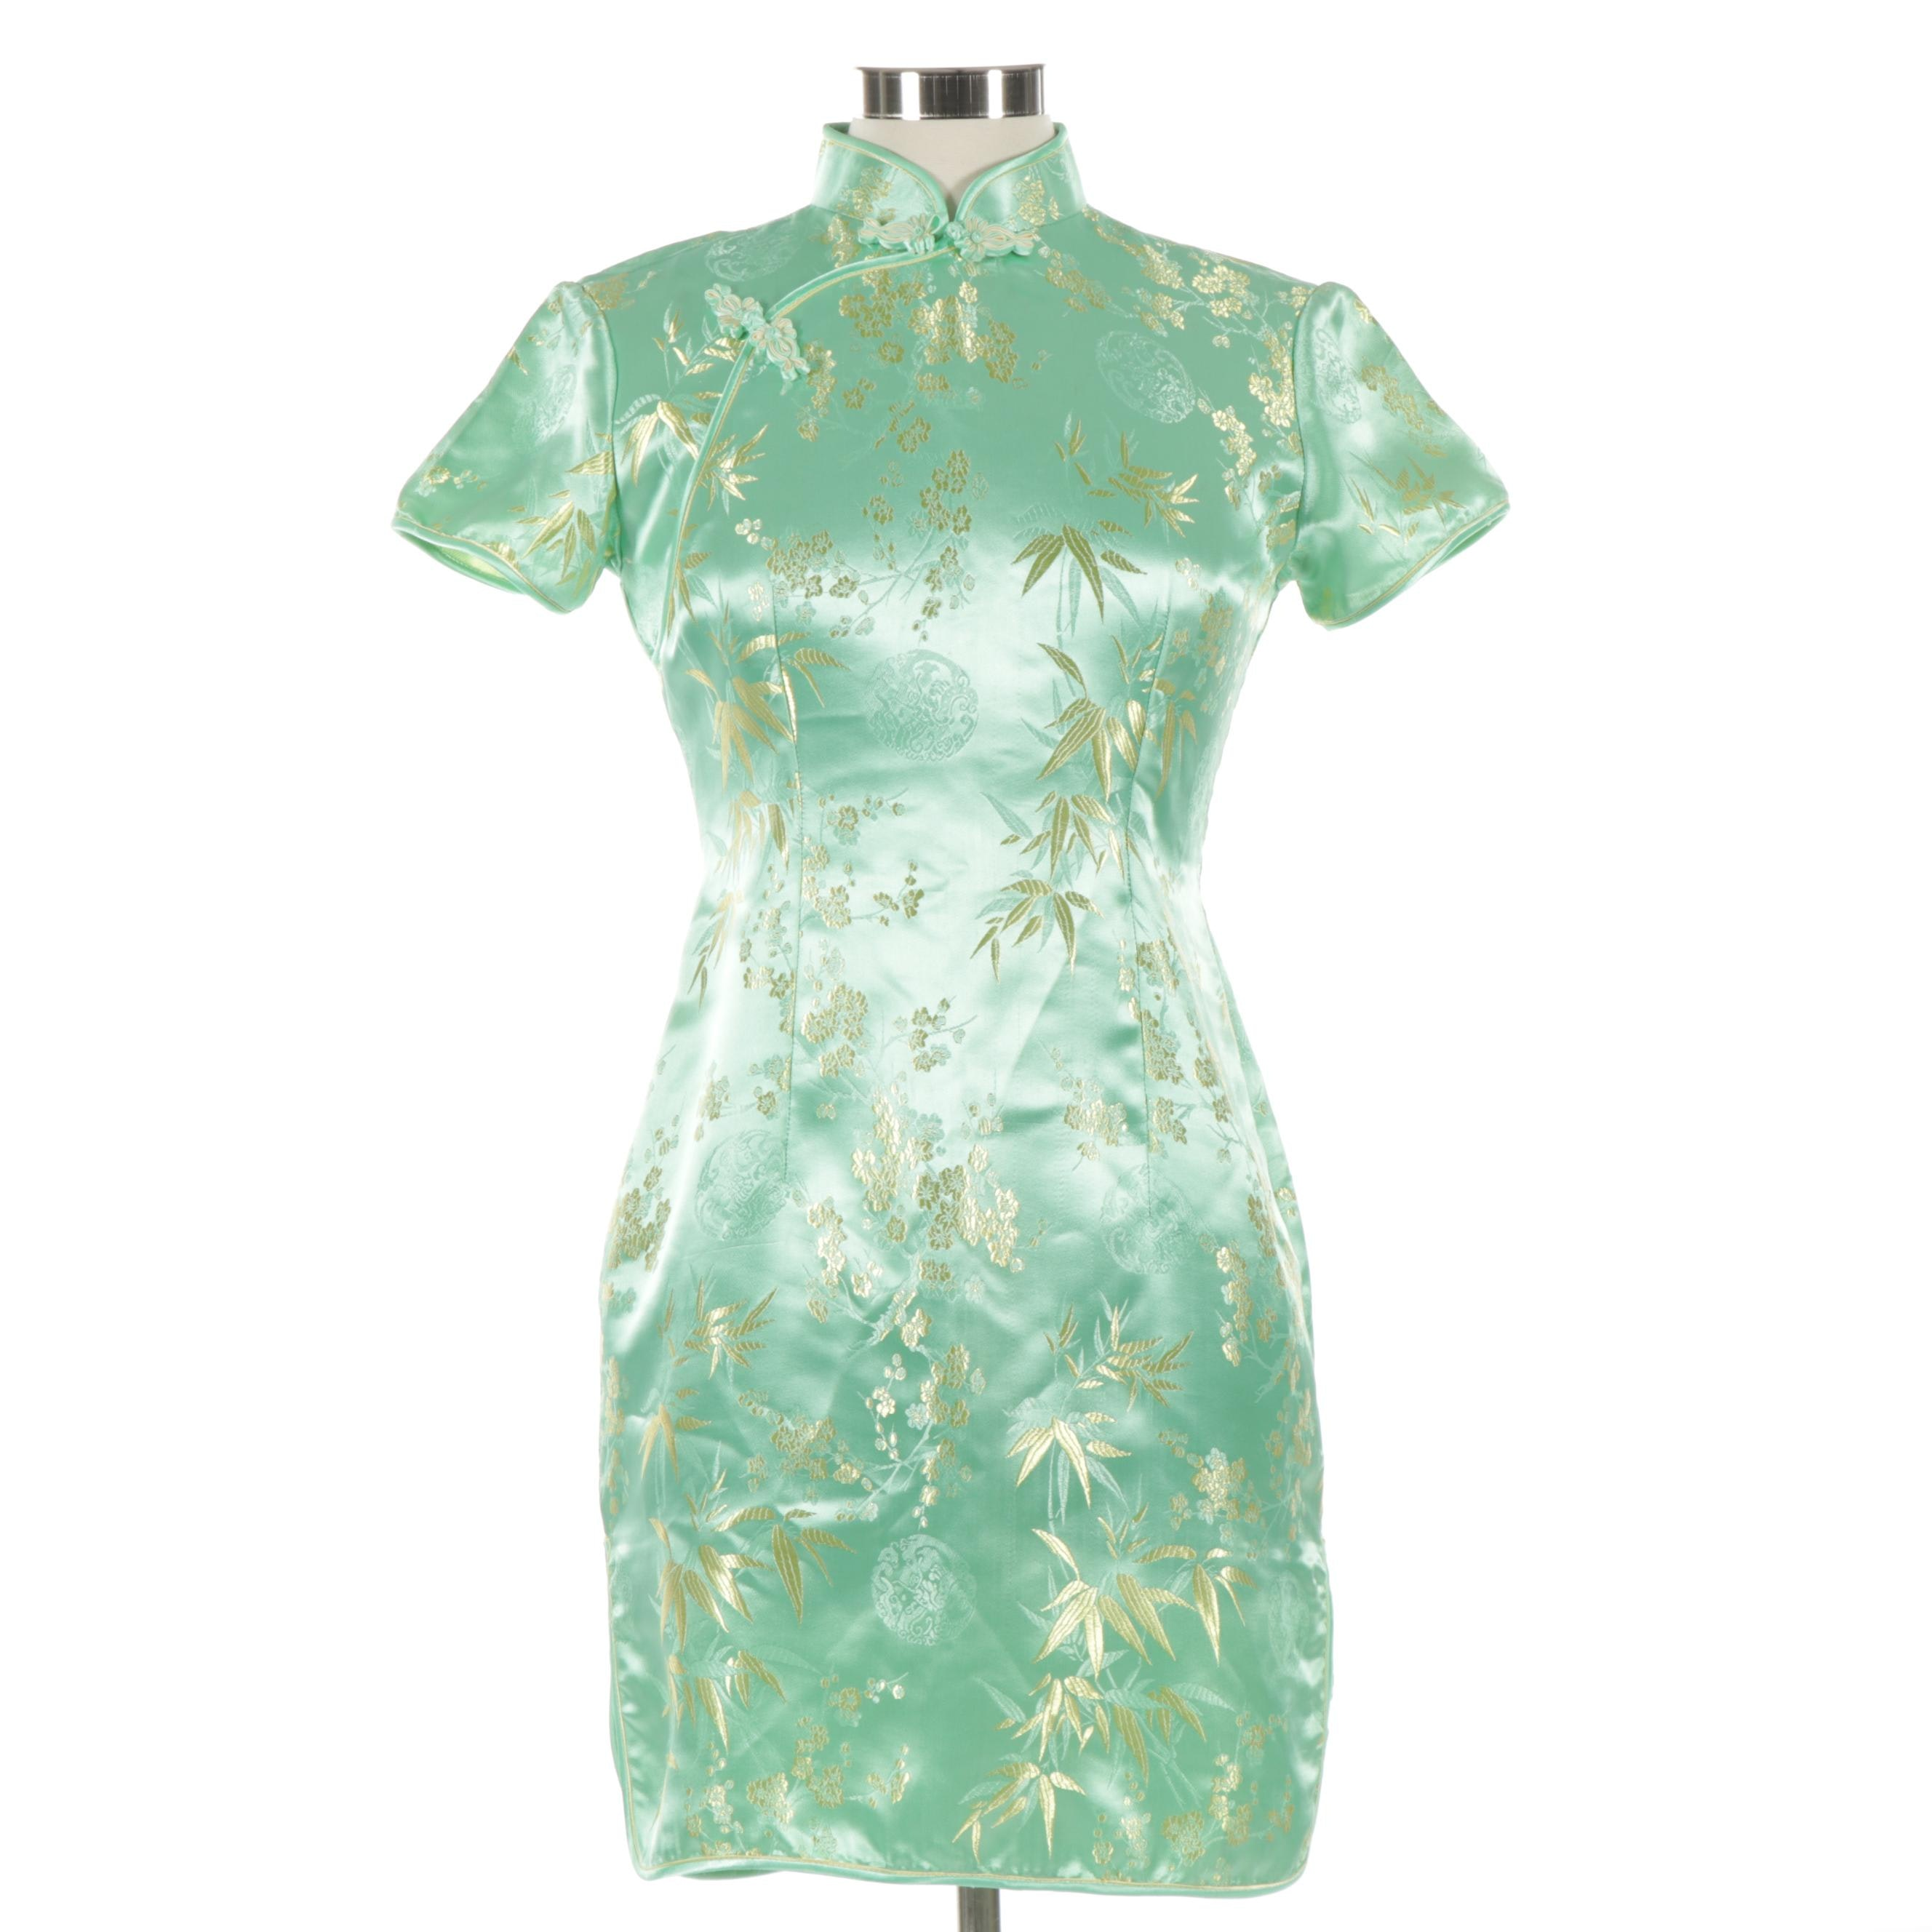 Women's Chinese Floral and Bamboo Leaf Brocade Cheongsam Dress